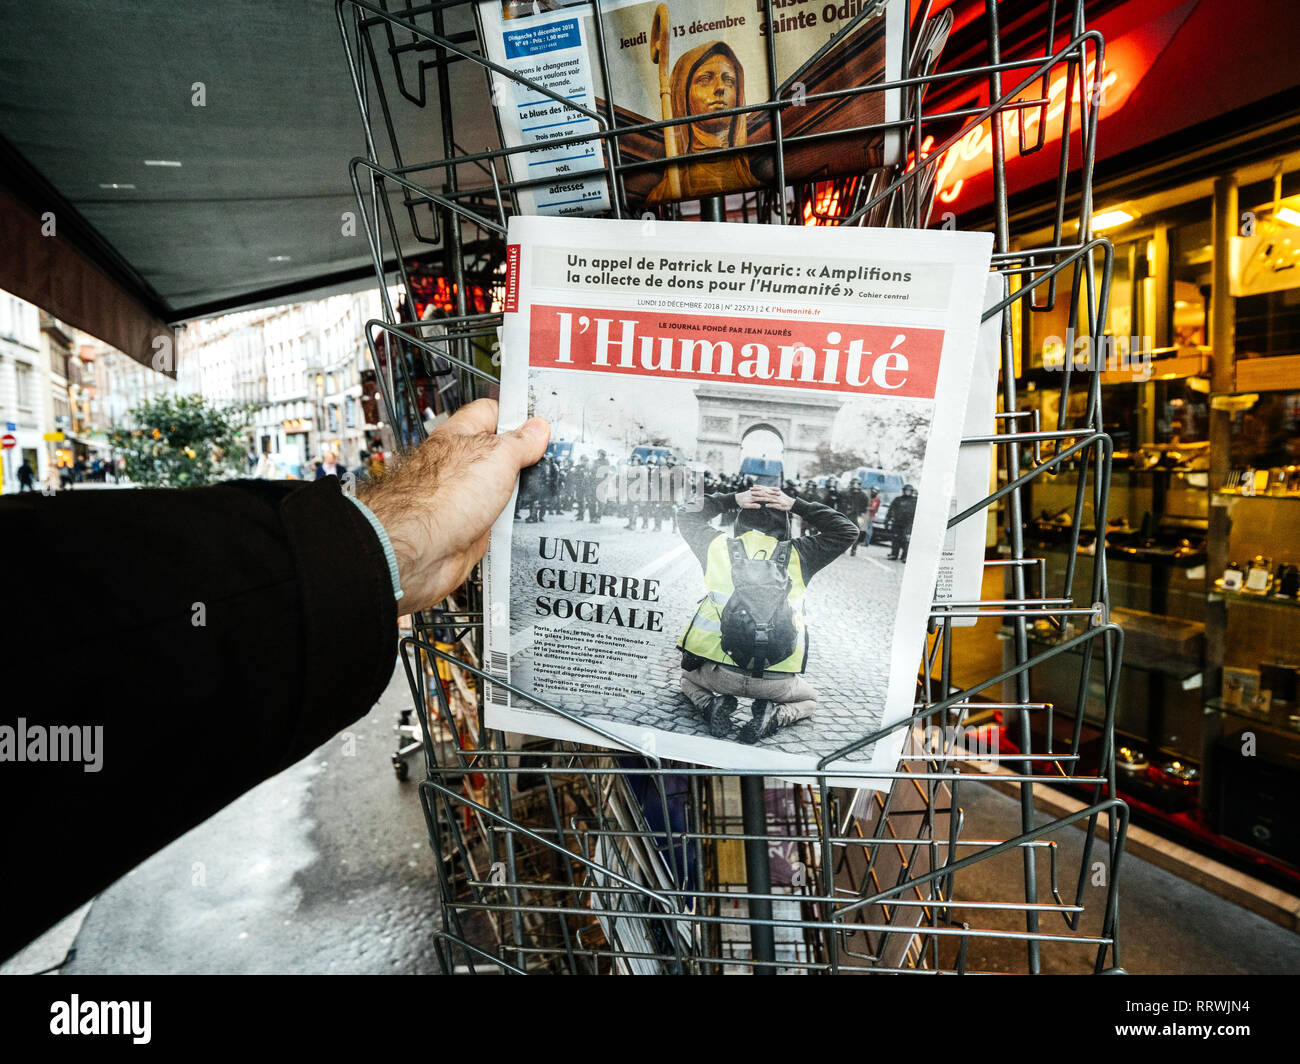 PARIS, FRANCE - DEC 10, 2018: Newspaper stand kiosk stand selling press with male hand buying latest l'Humanite edition featuring Gilets Jaunes Yellow Jackets movements on front cover - Stock Image